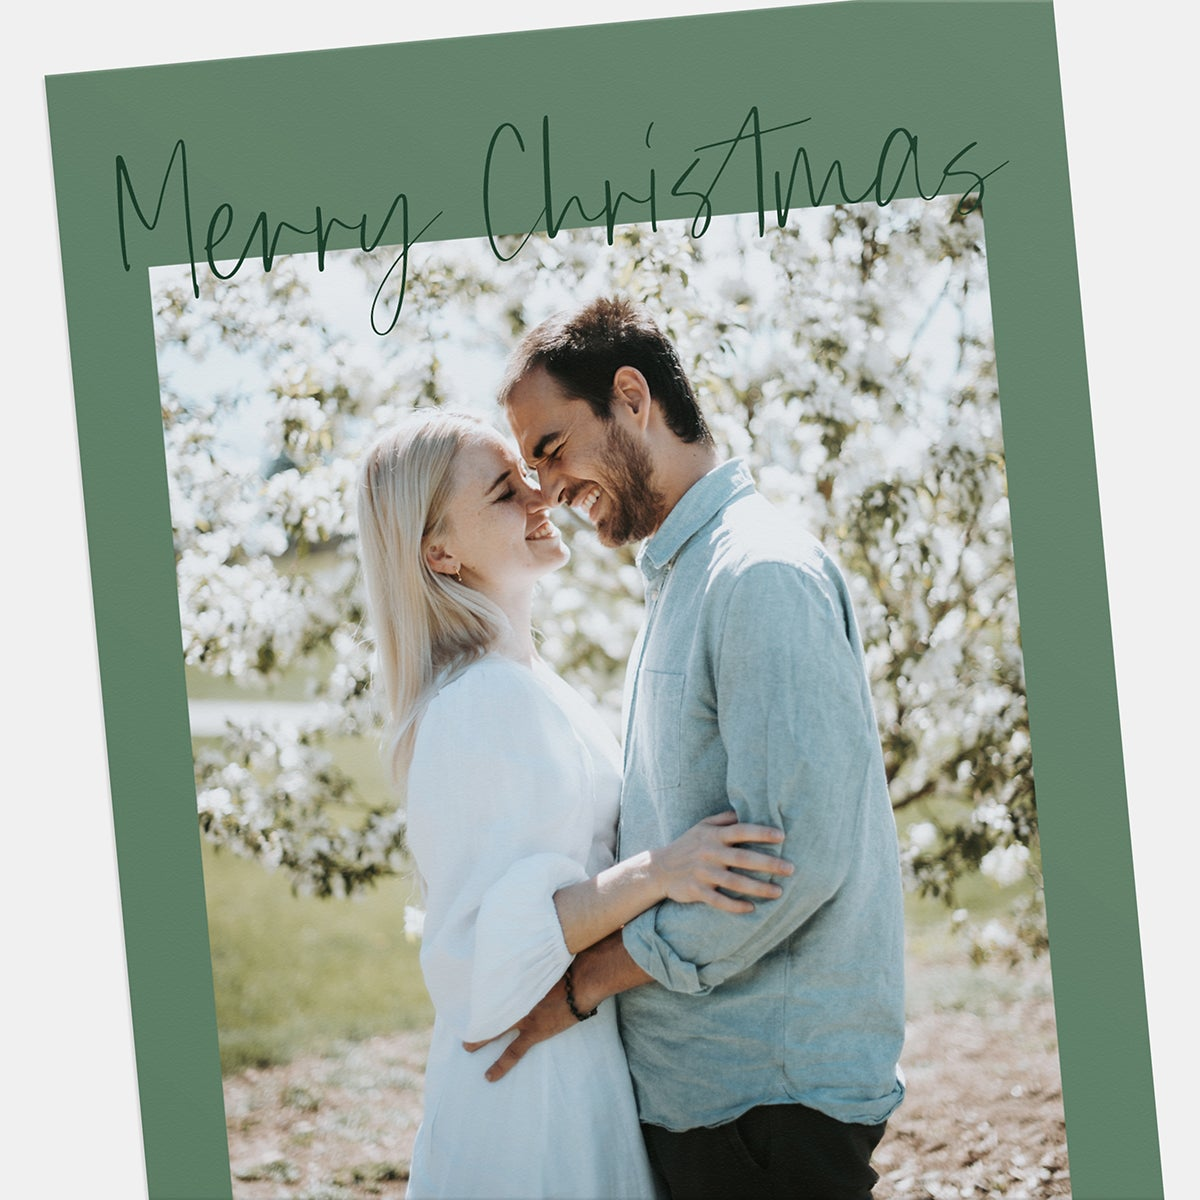 Simply Handwritten Holiday Card